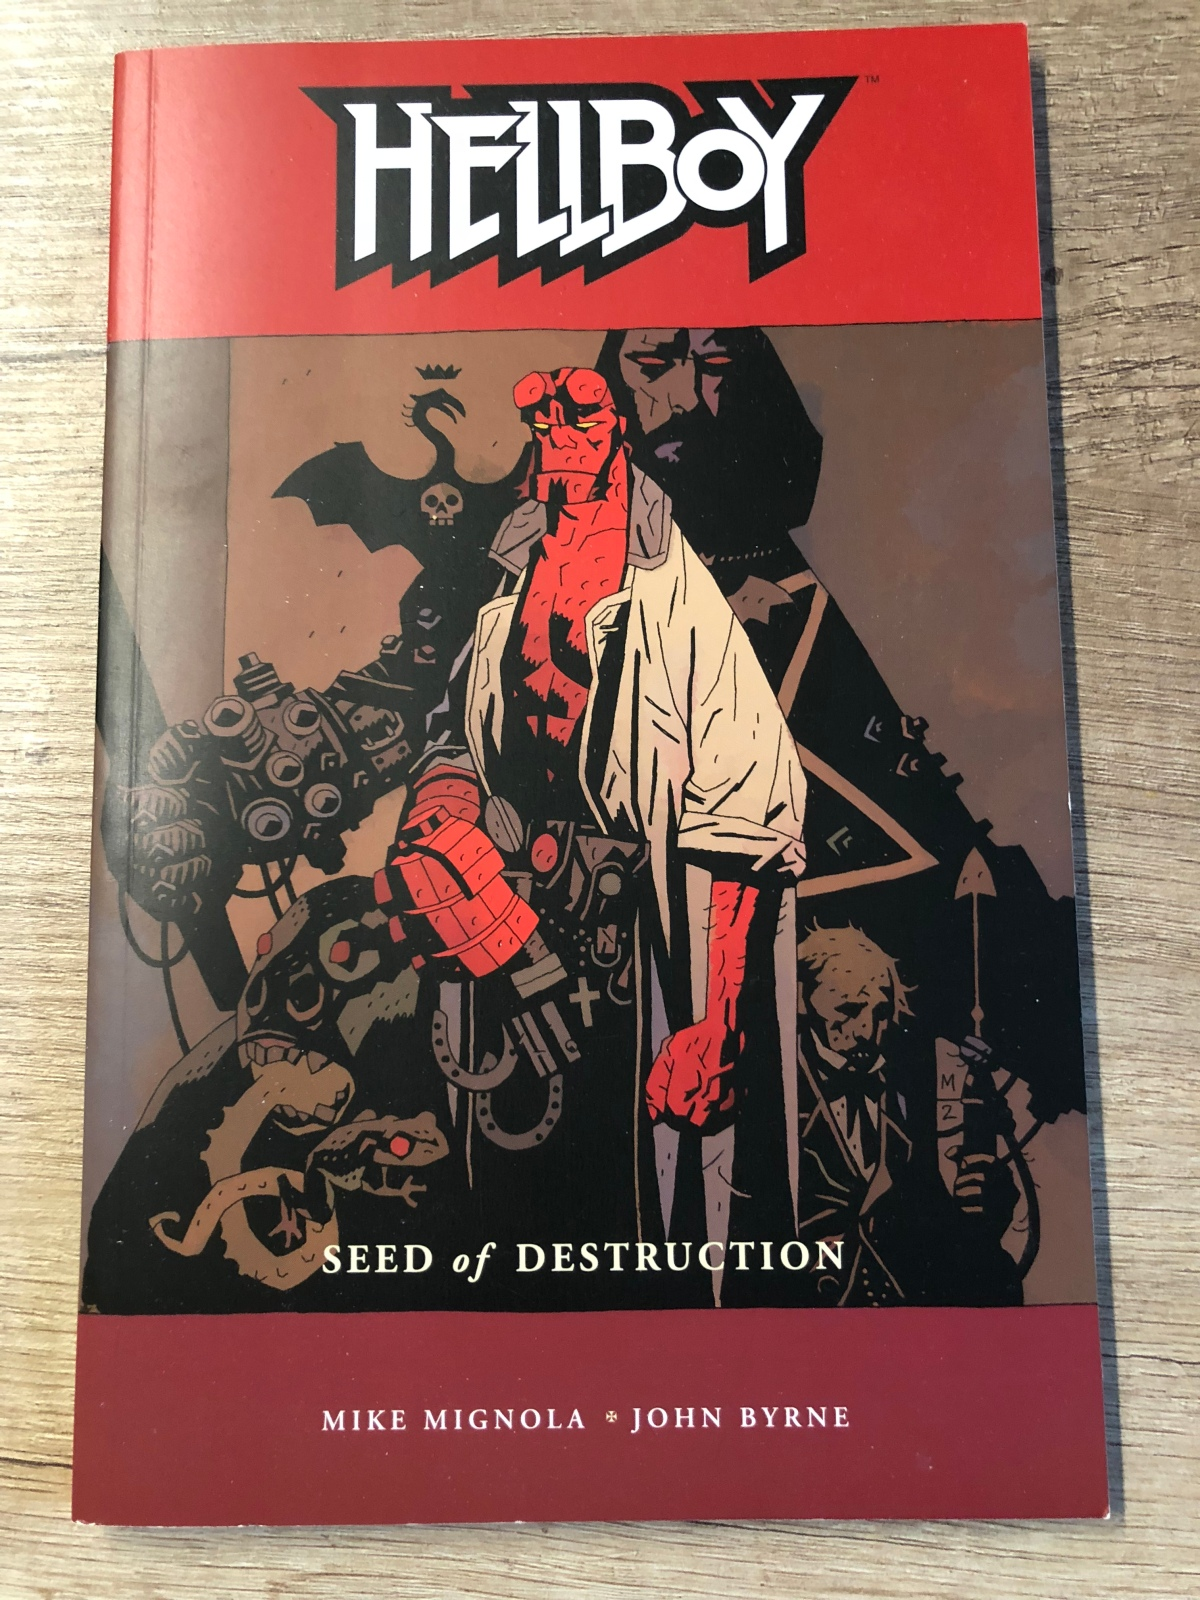 Hellboy Vol. 1: Seed of Destruction |Review